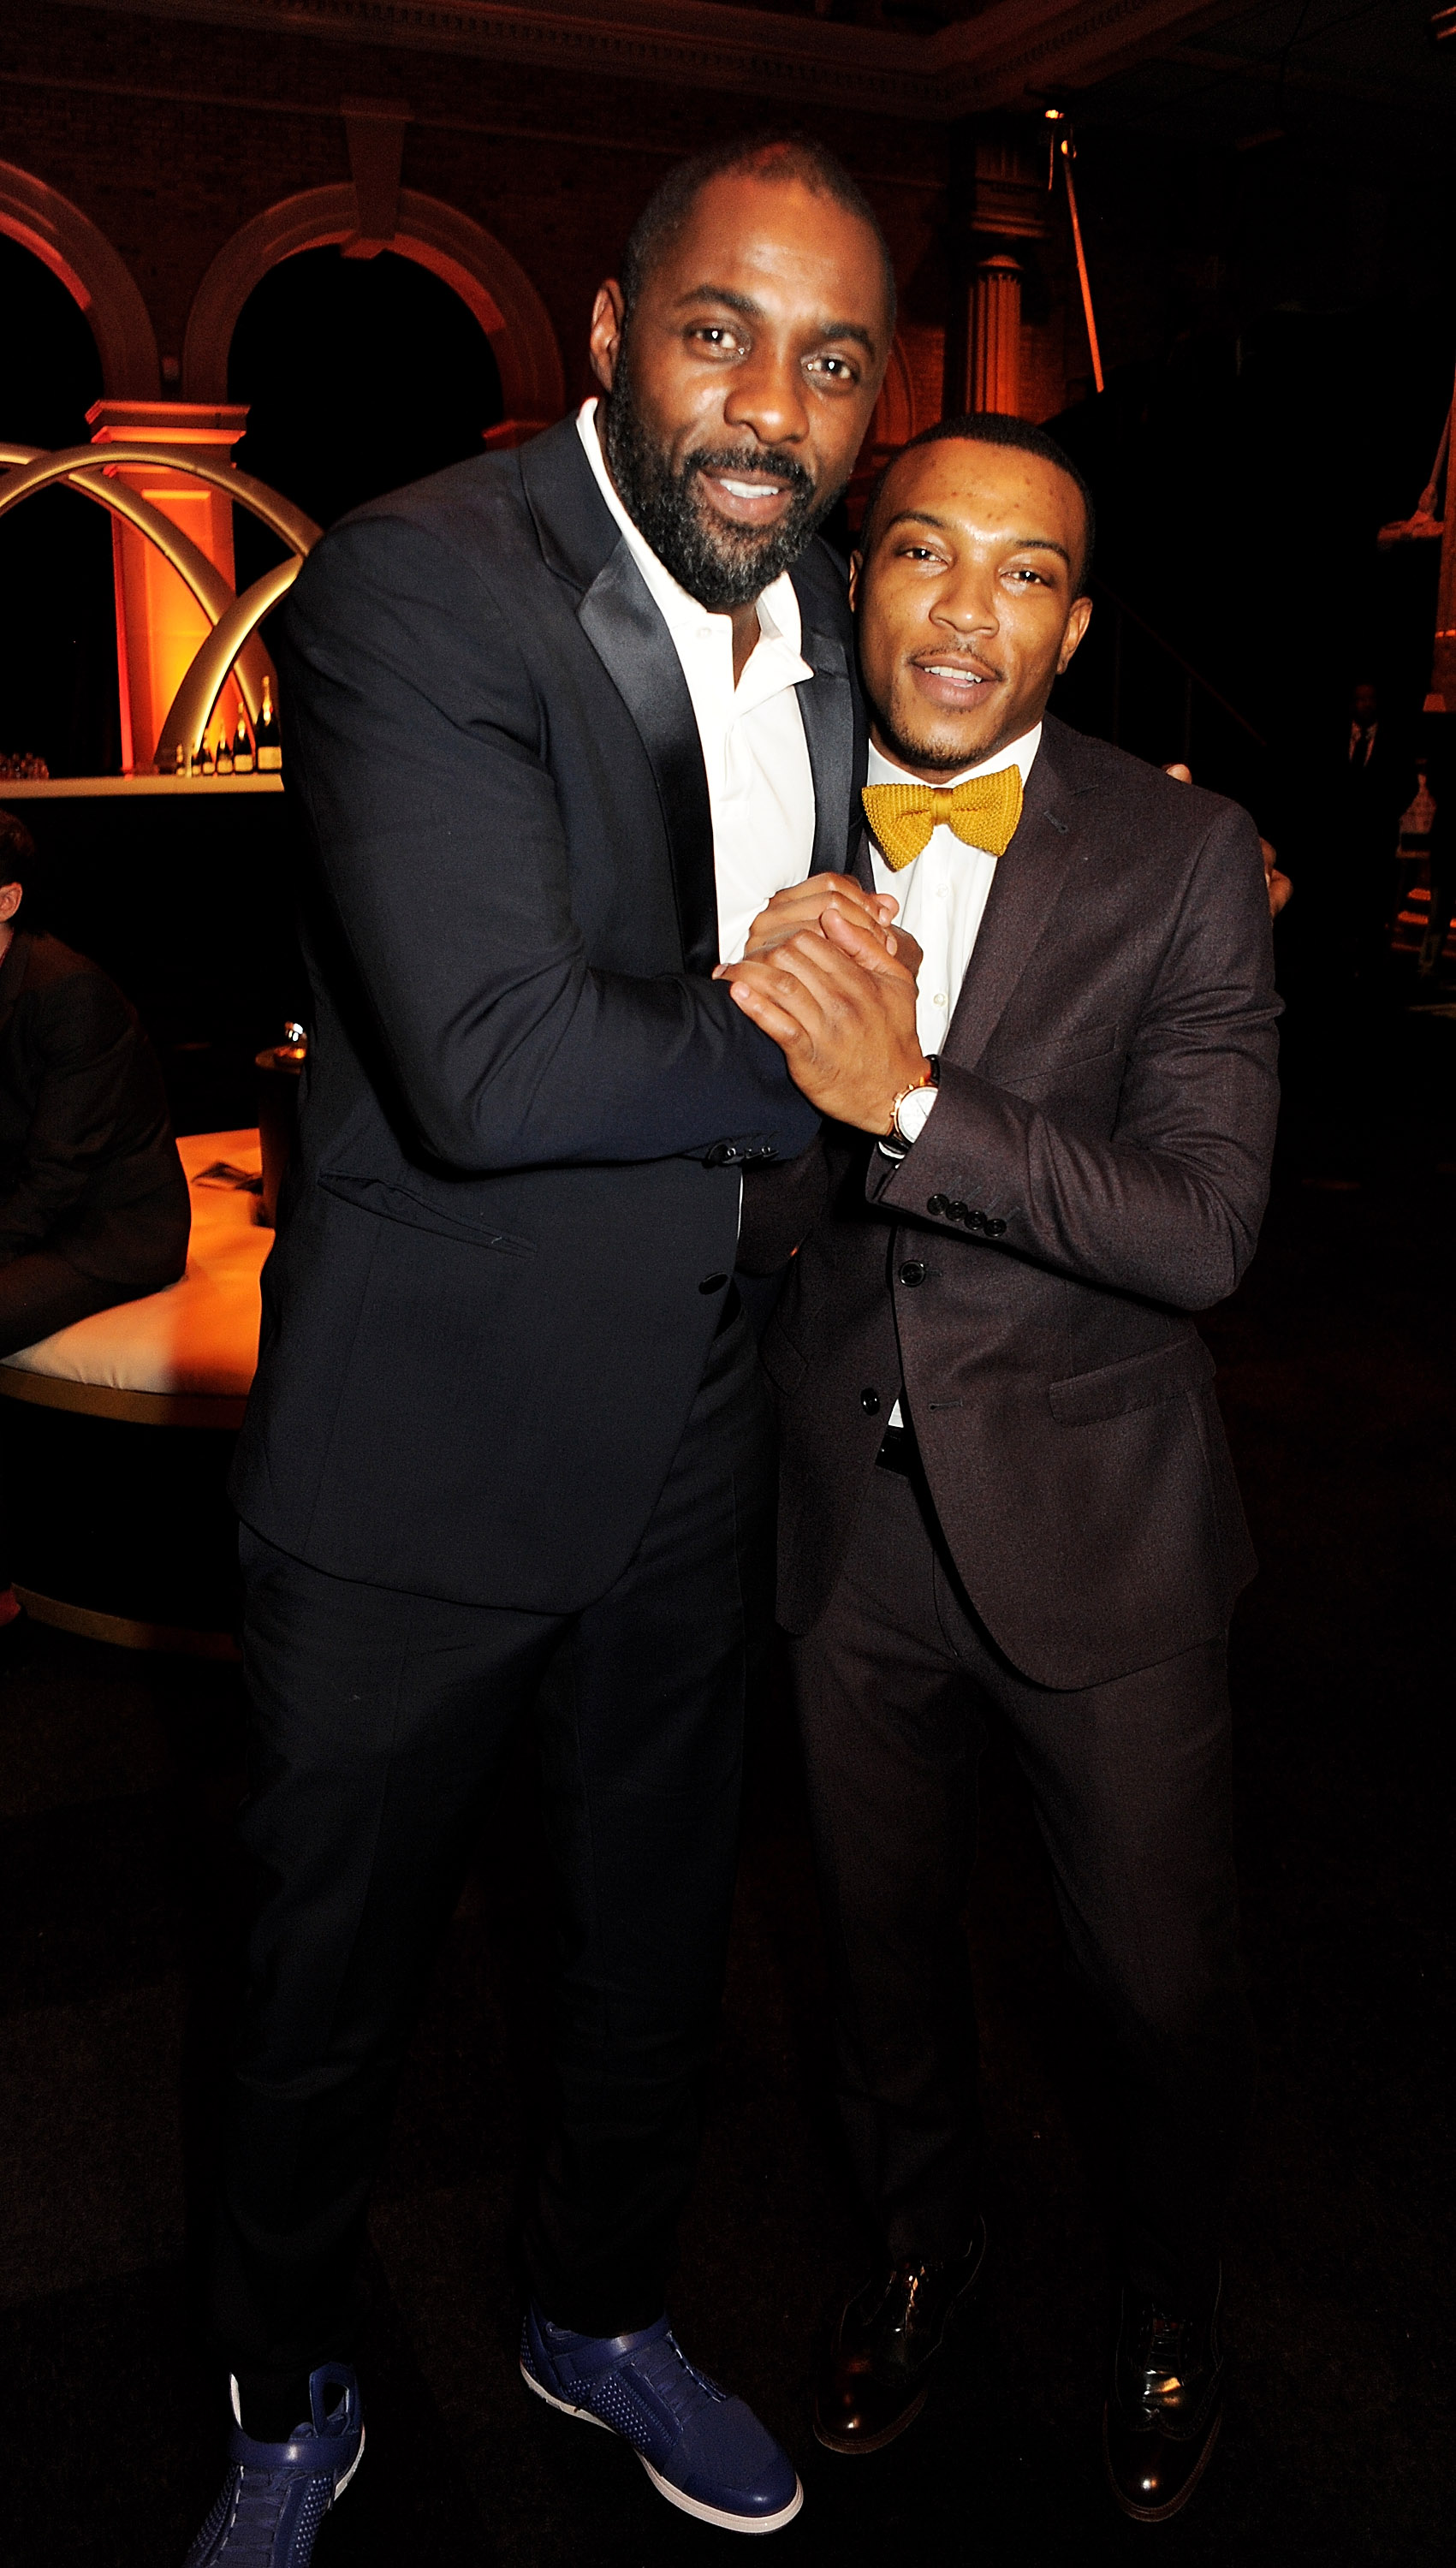 Idris Elba and Ashley Walters posed together at the BIFAs.